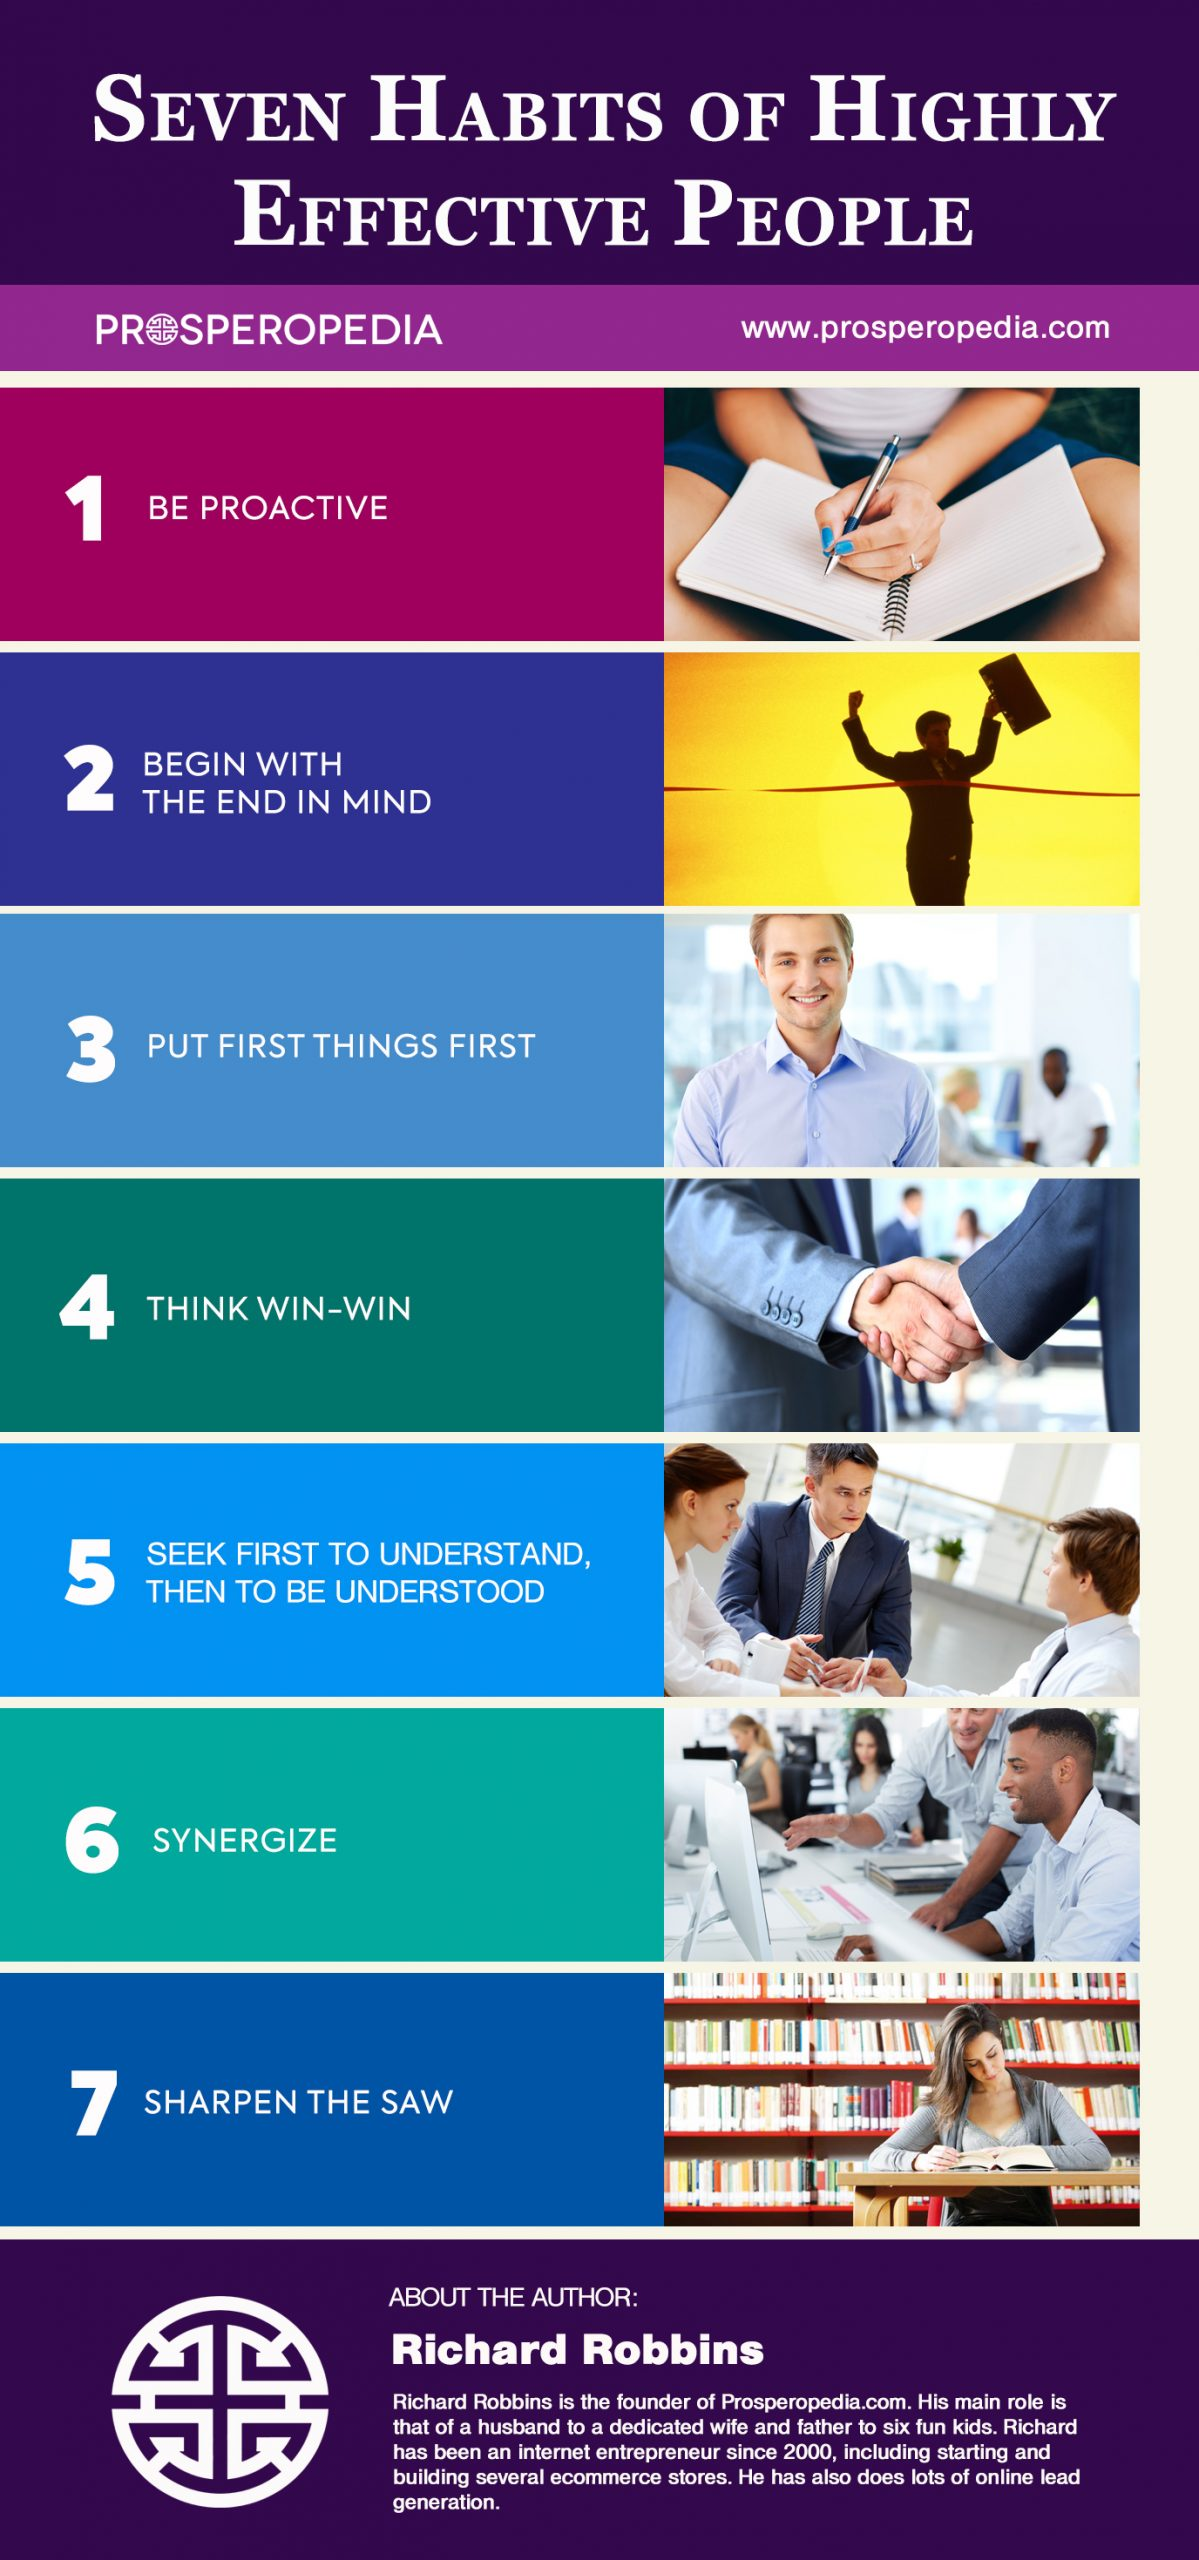 Seven Habits Of Highly Effective People Summary Steven Covey